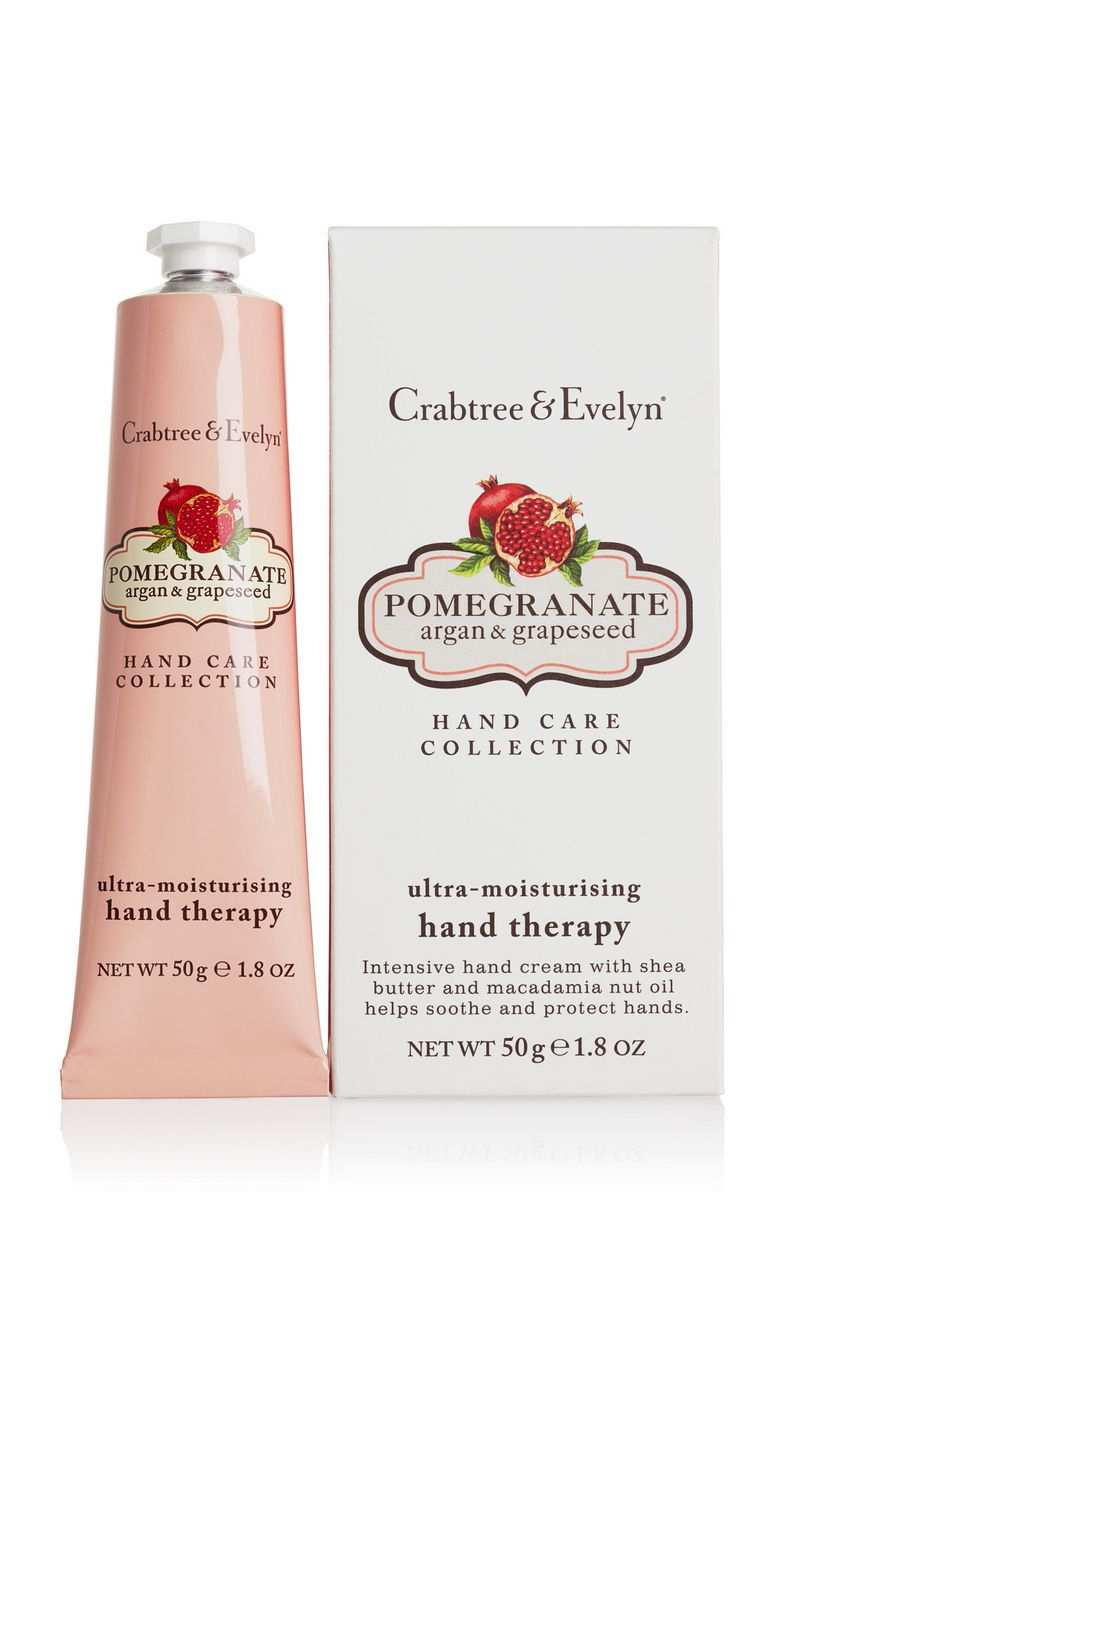 Crabtree & Evelyn Pomegranate & Argan Oil Hand Therapy 50 gr